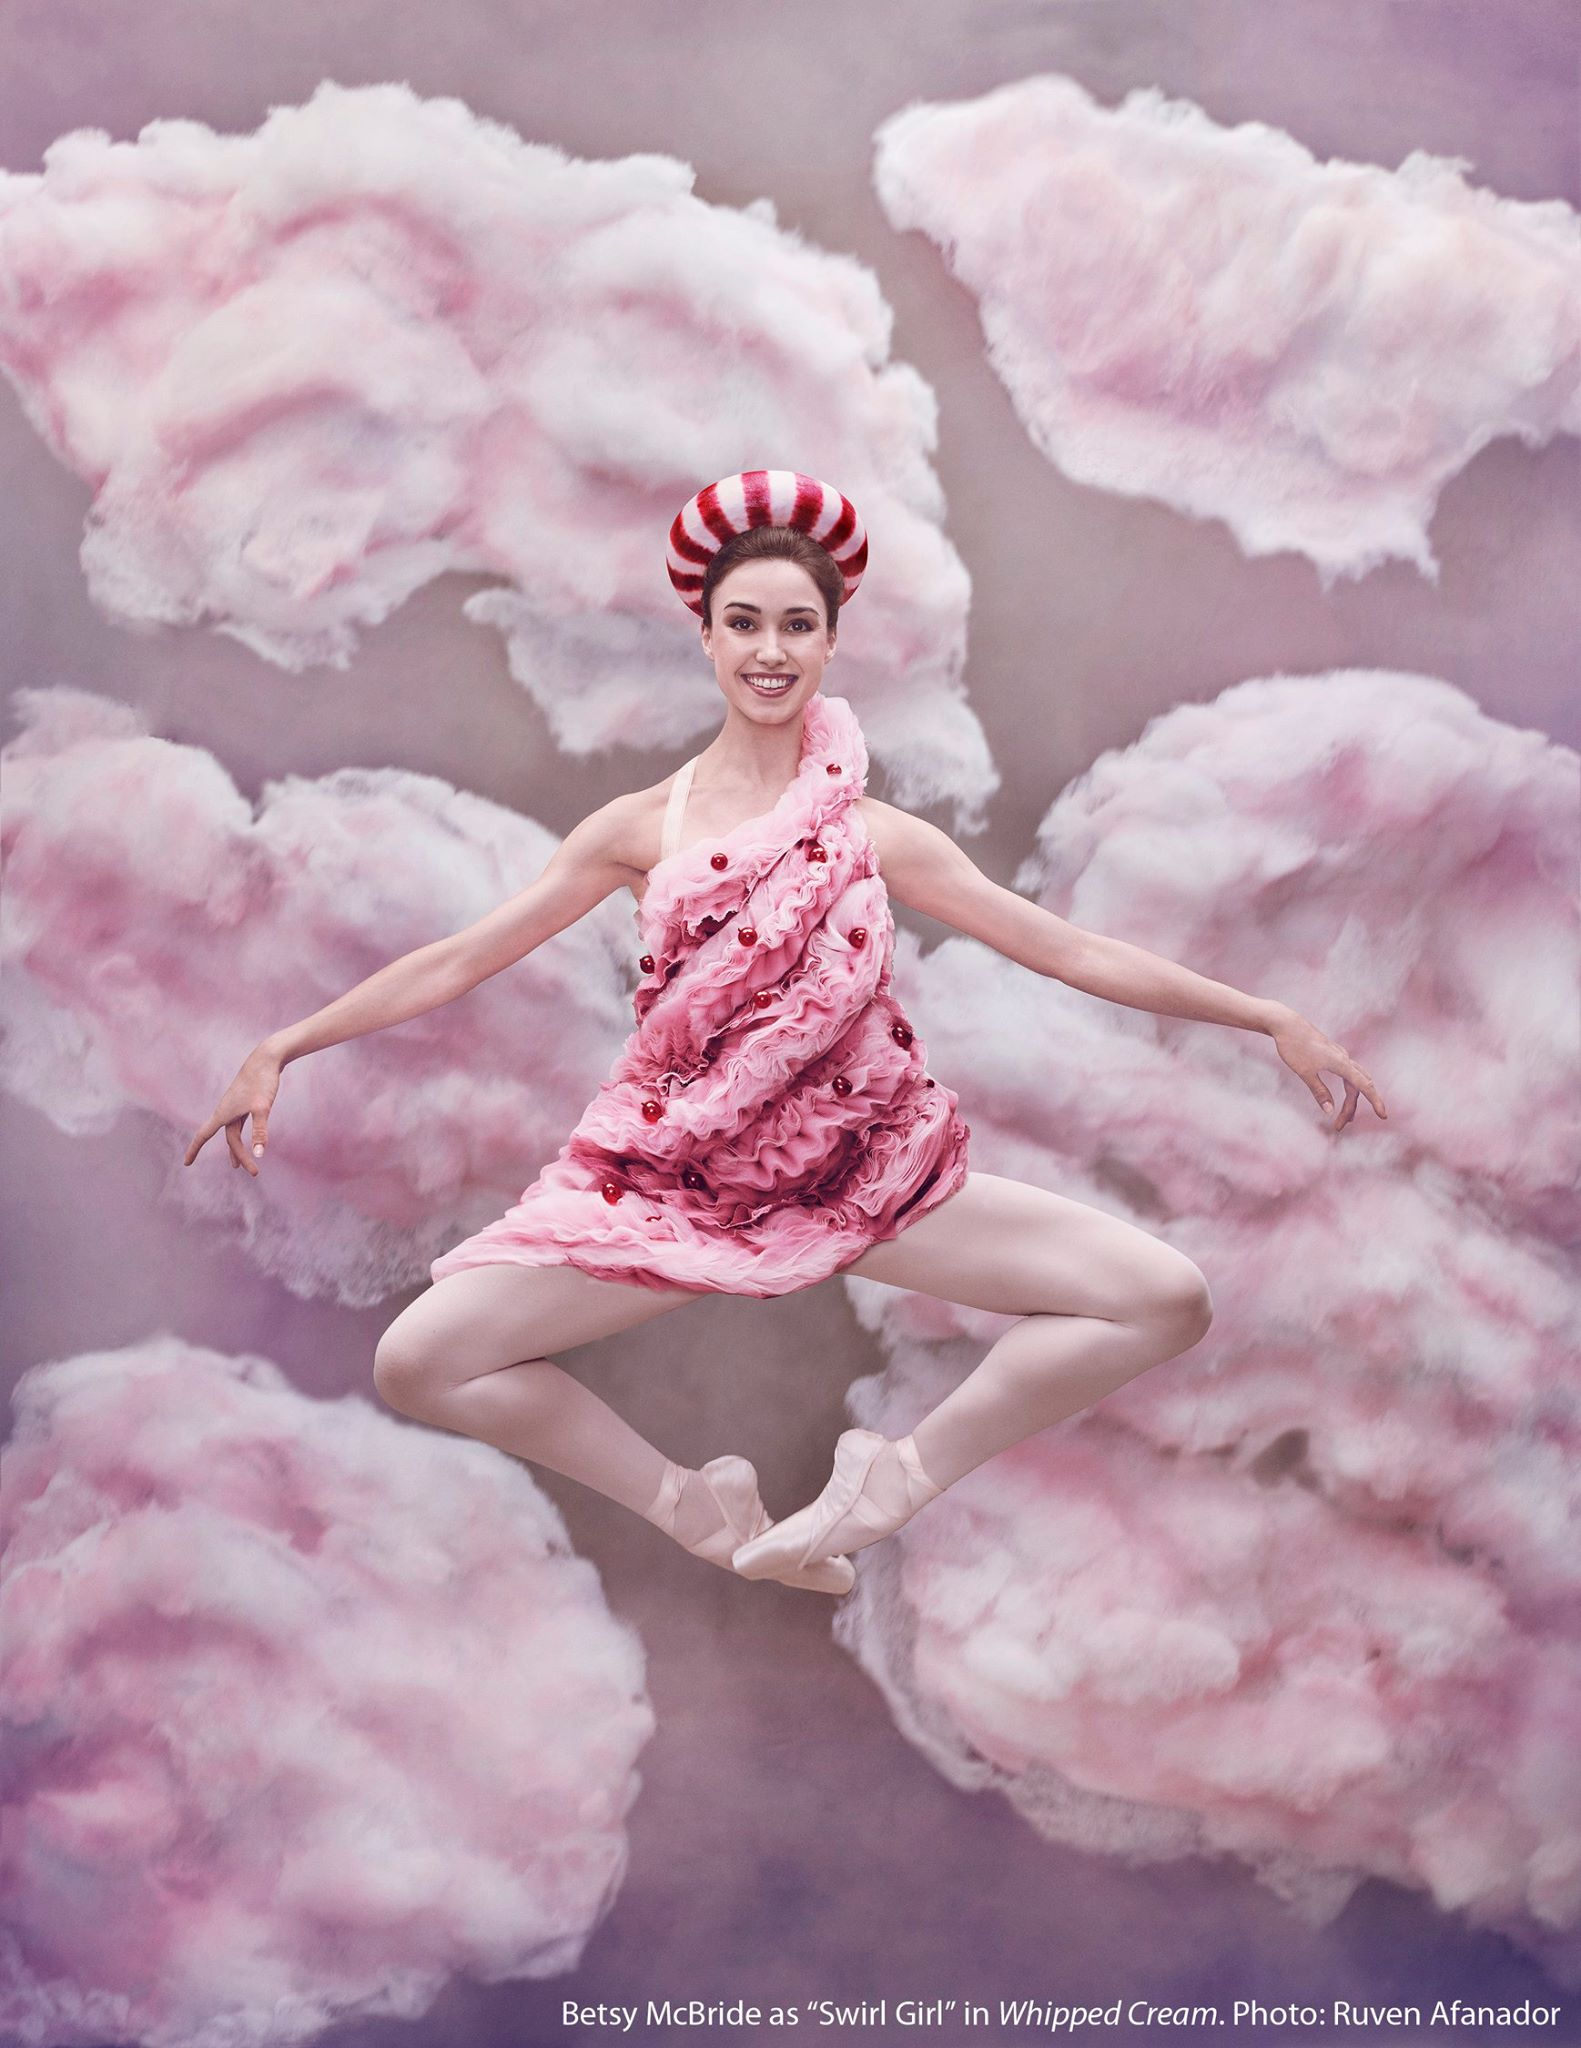 Upcoming: Mark Ryden x American Ballet Theatre -